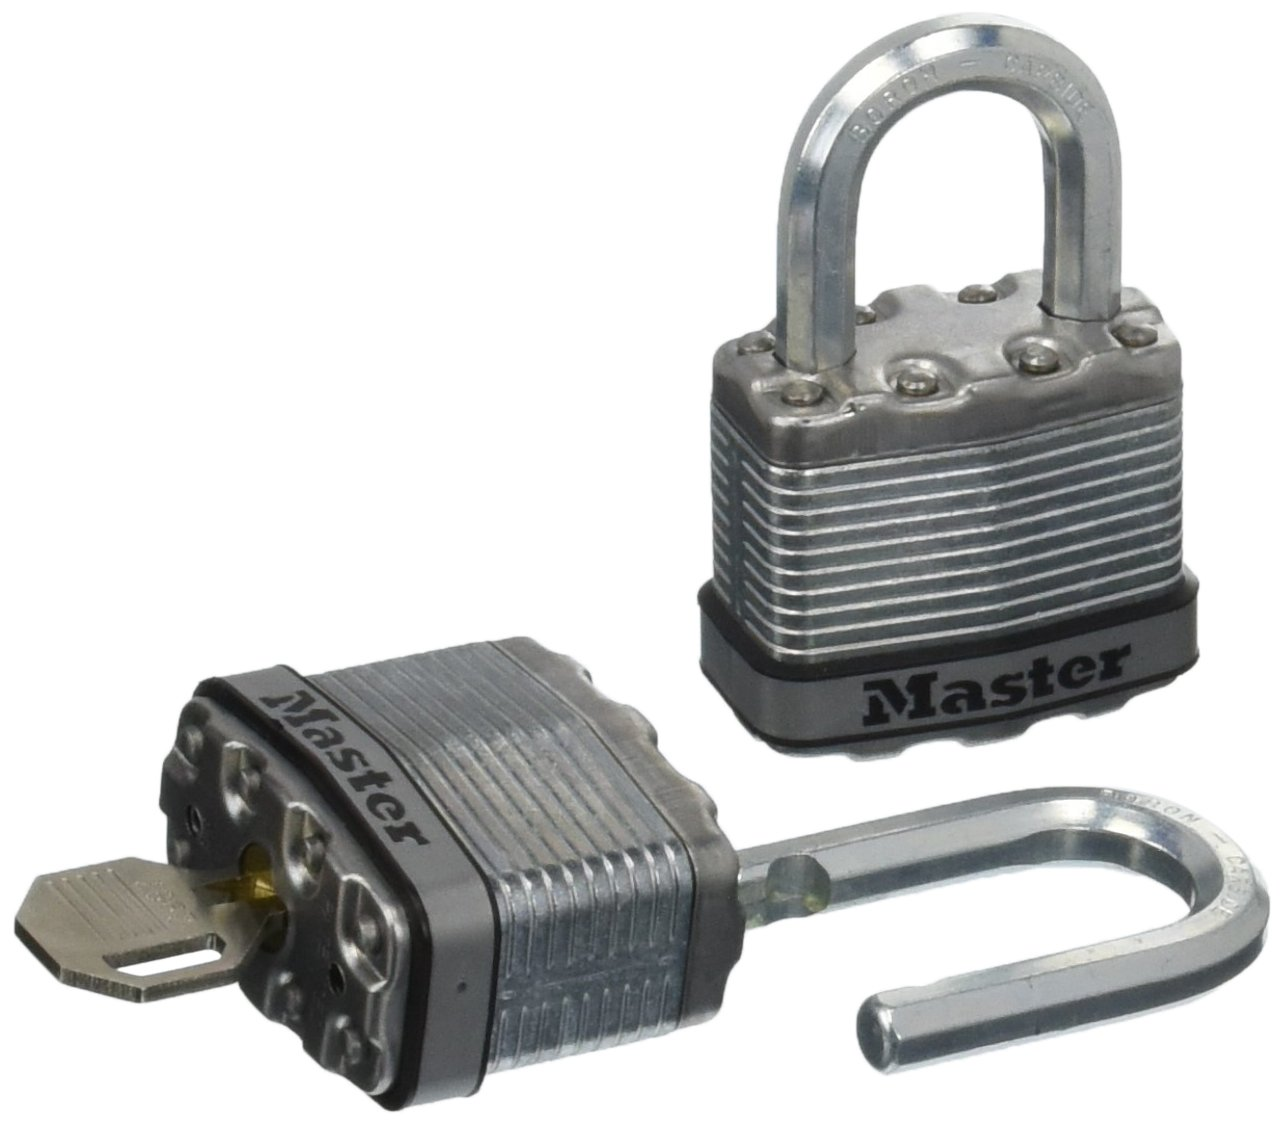 Master Lock M1XTHC 1-3/4'' Stainless Steel Magnum Padlock (2 Count)